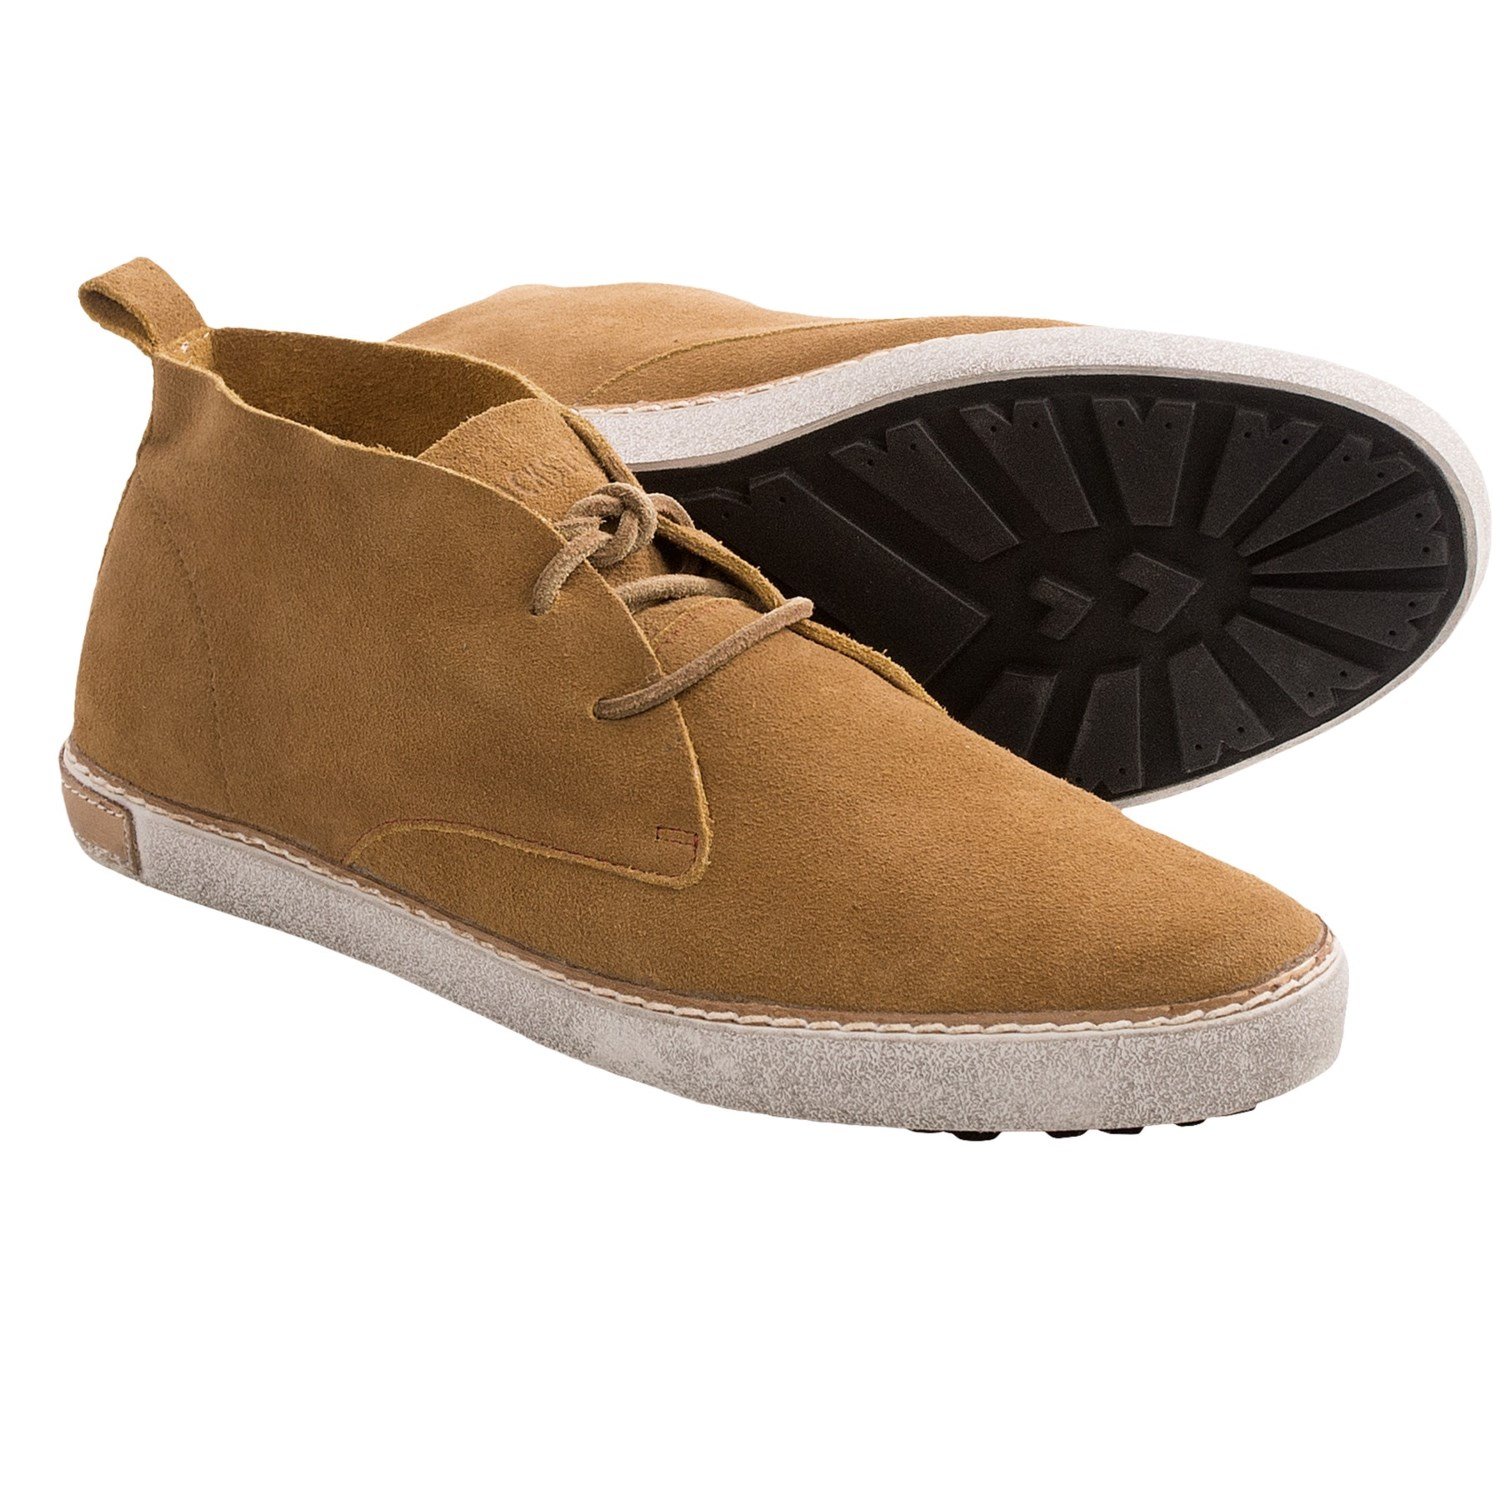 Blackstone DM49 Suede Sport Chukka Boots (For Men) - Save 75%